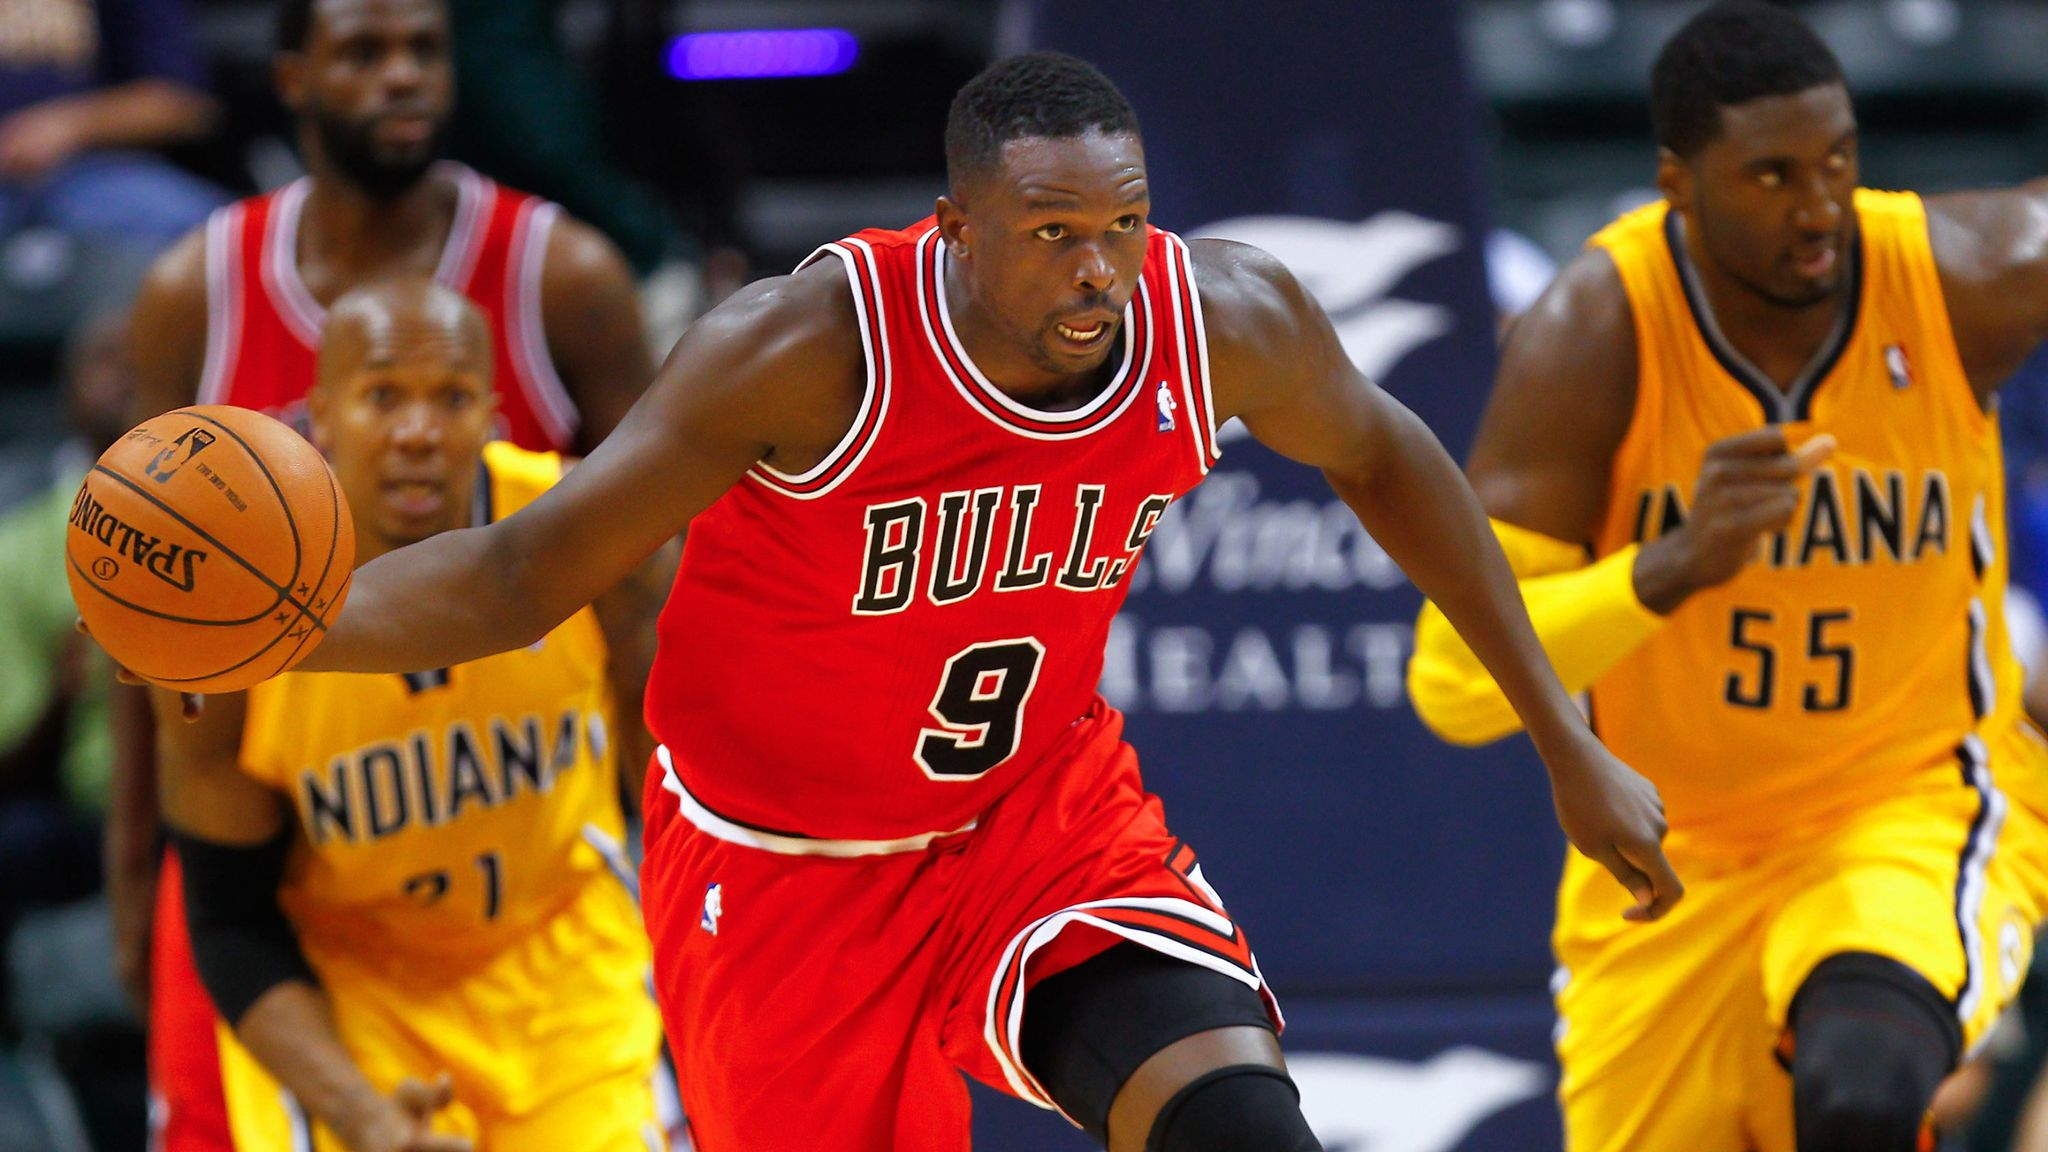 Luol Deng retires by signing one-day deal with Chicago Bulls